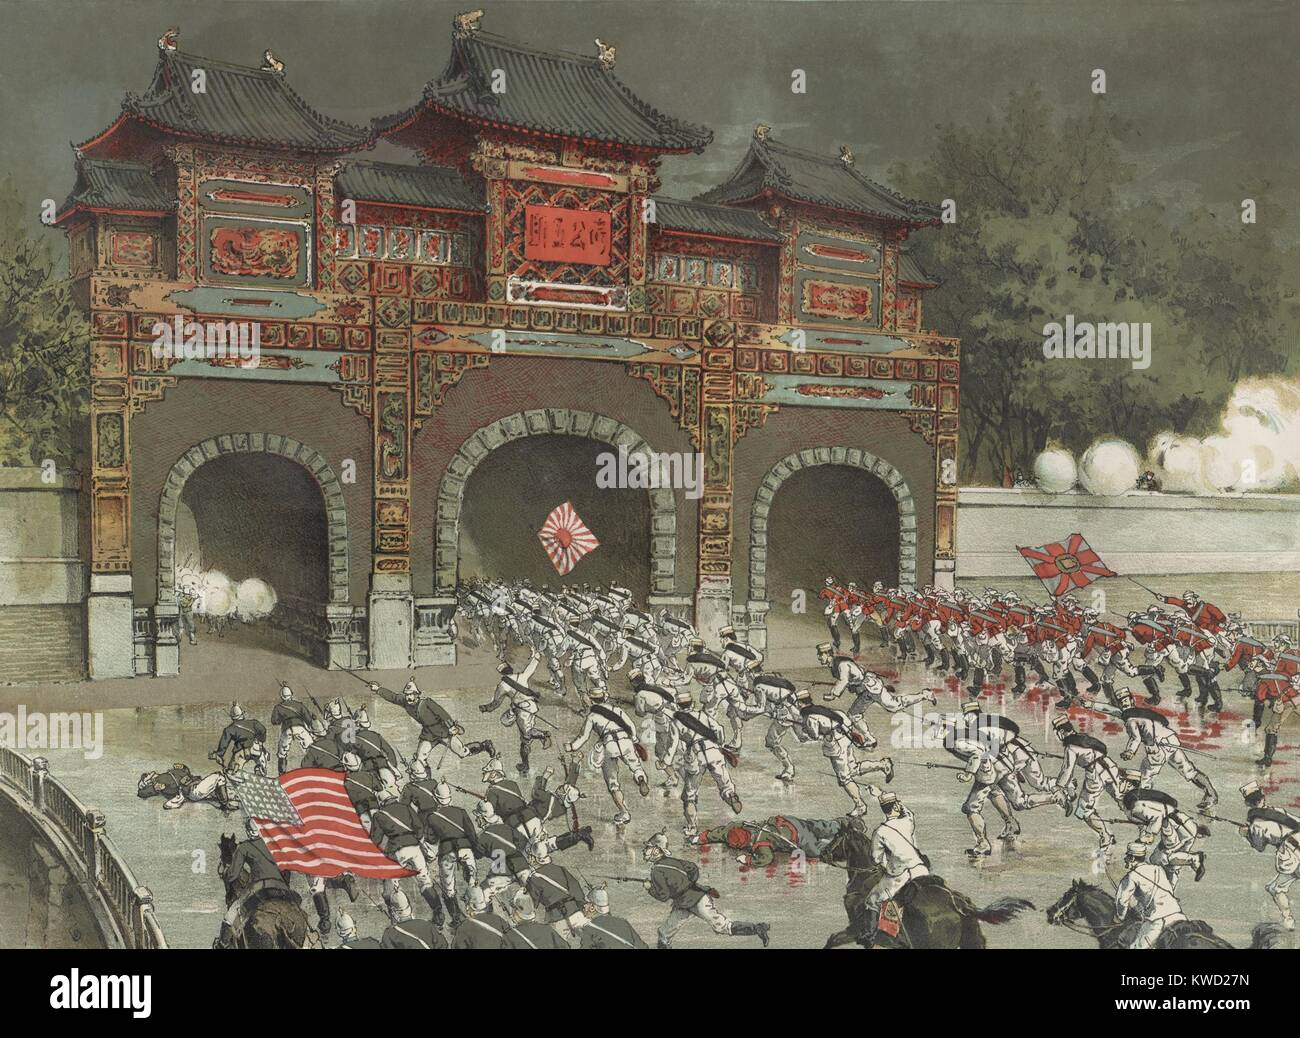 American, British, and Japanese troops storming Beijing during the Boxer Rebellion. August 14, 1900. In reality, - Stock Image